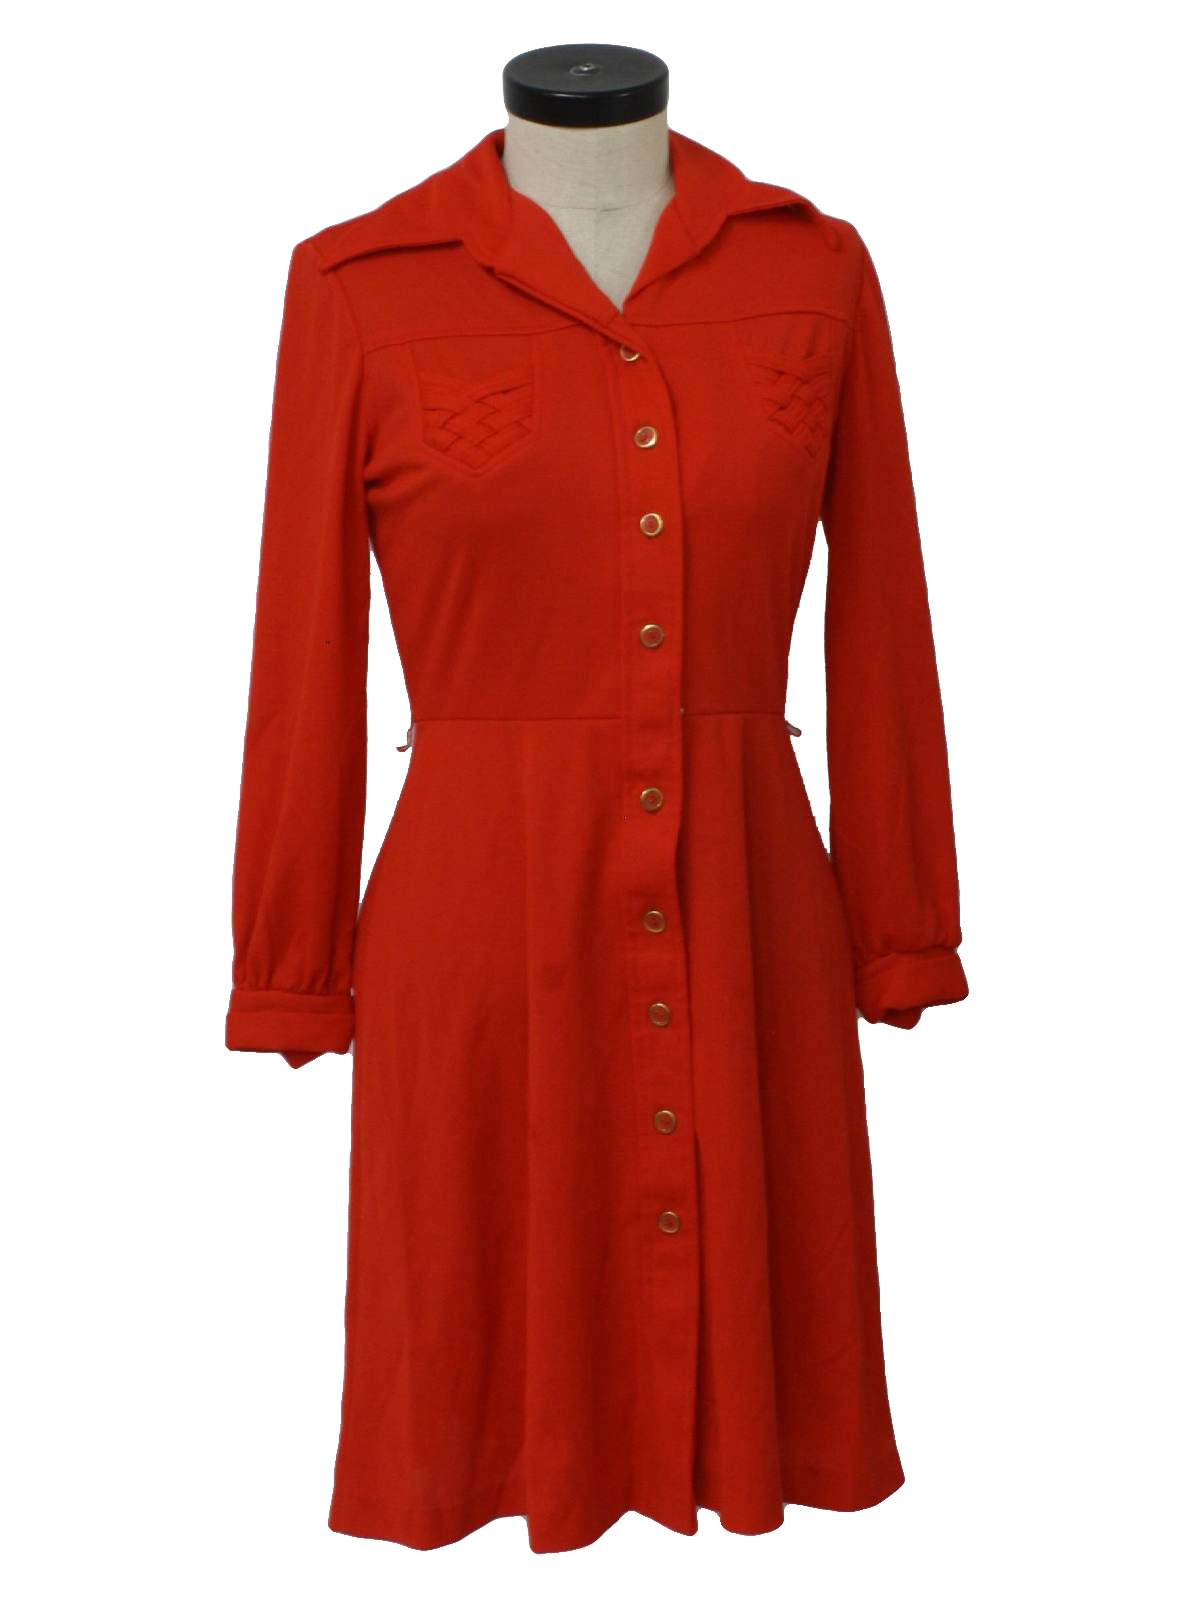 e33e405e2e9 70s Vintage JCPenney Dress  70s -JCPenney- Womens red background ...